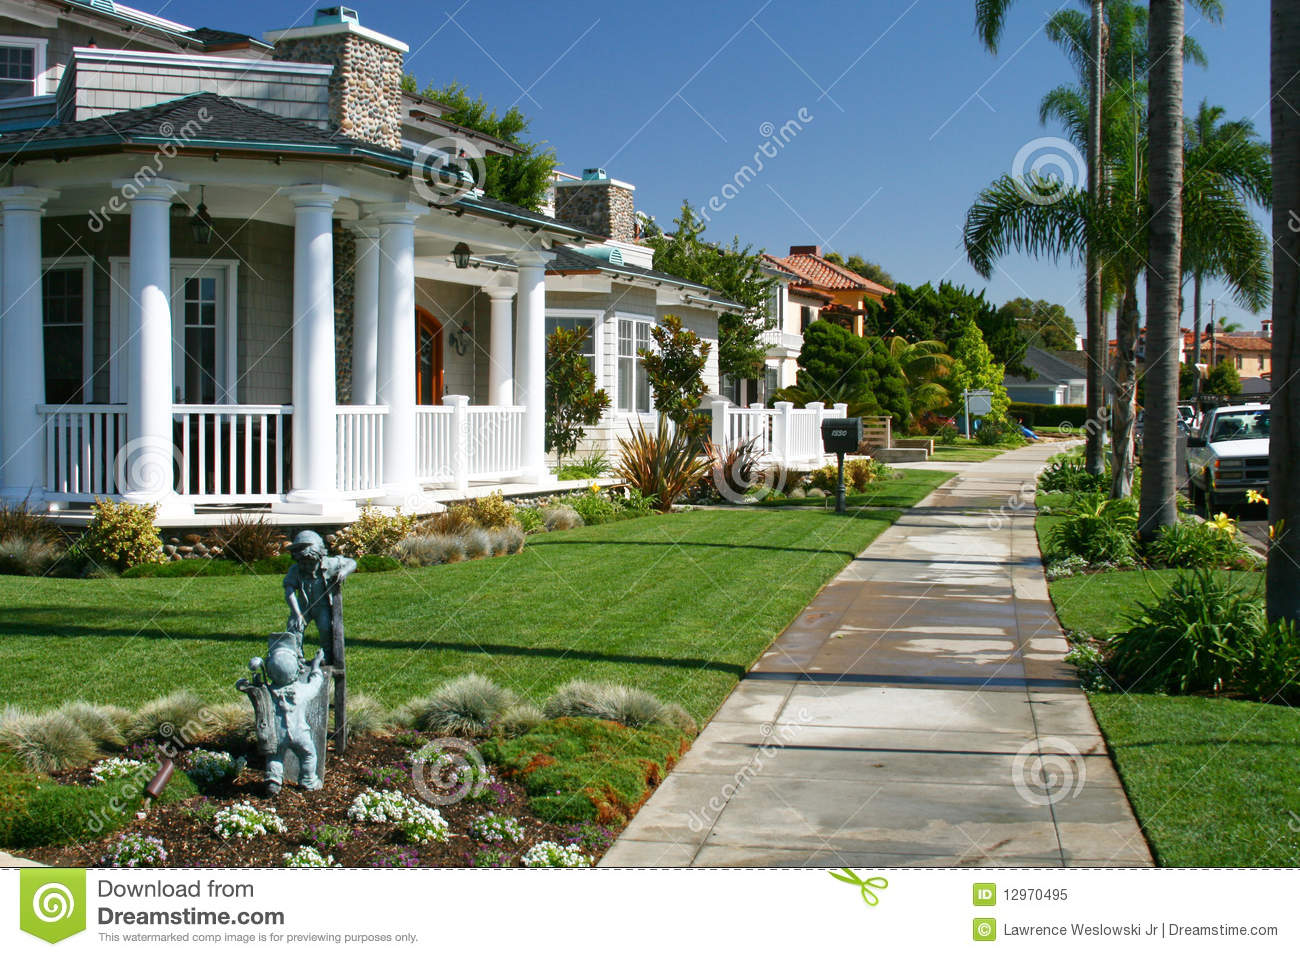 Luxury home 2 coronado california royalty free stock for Luxury houses in california